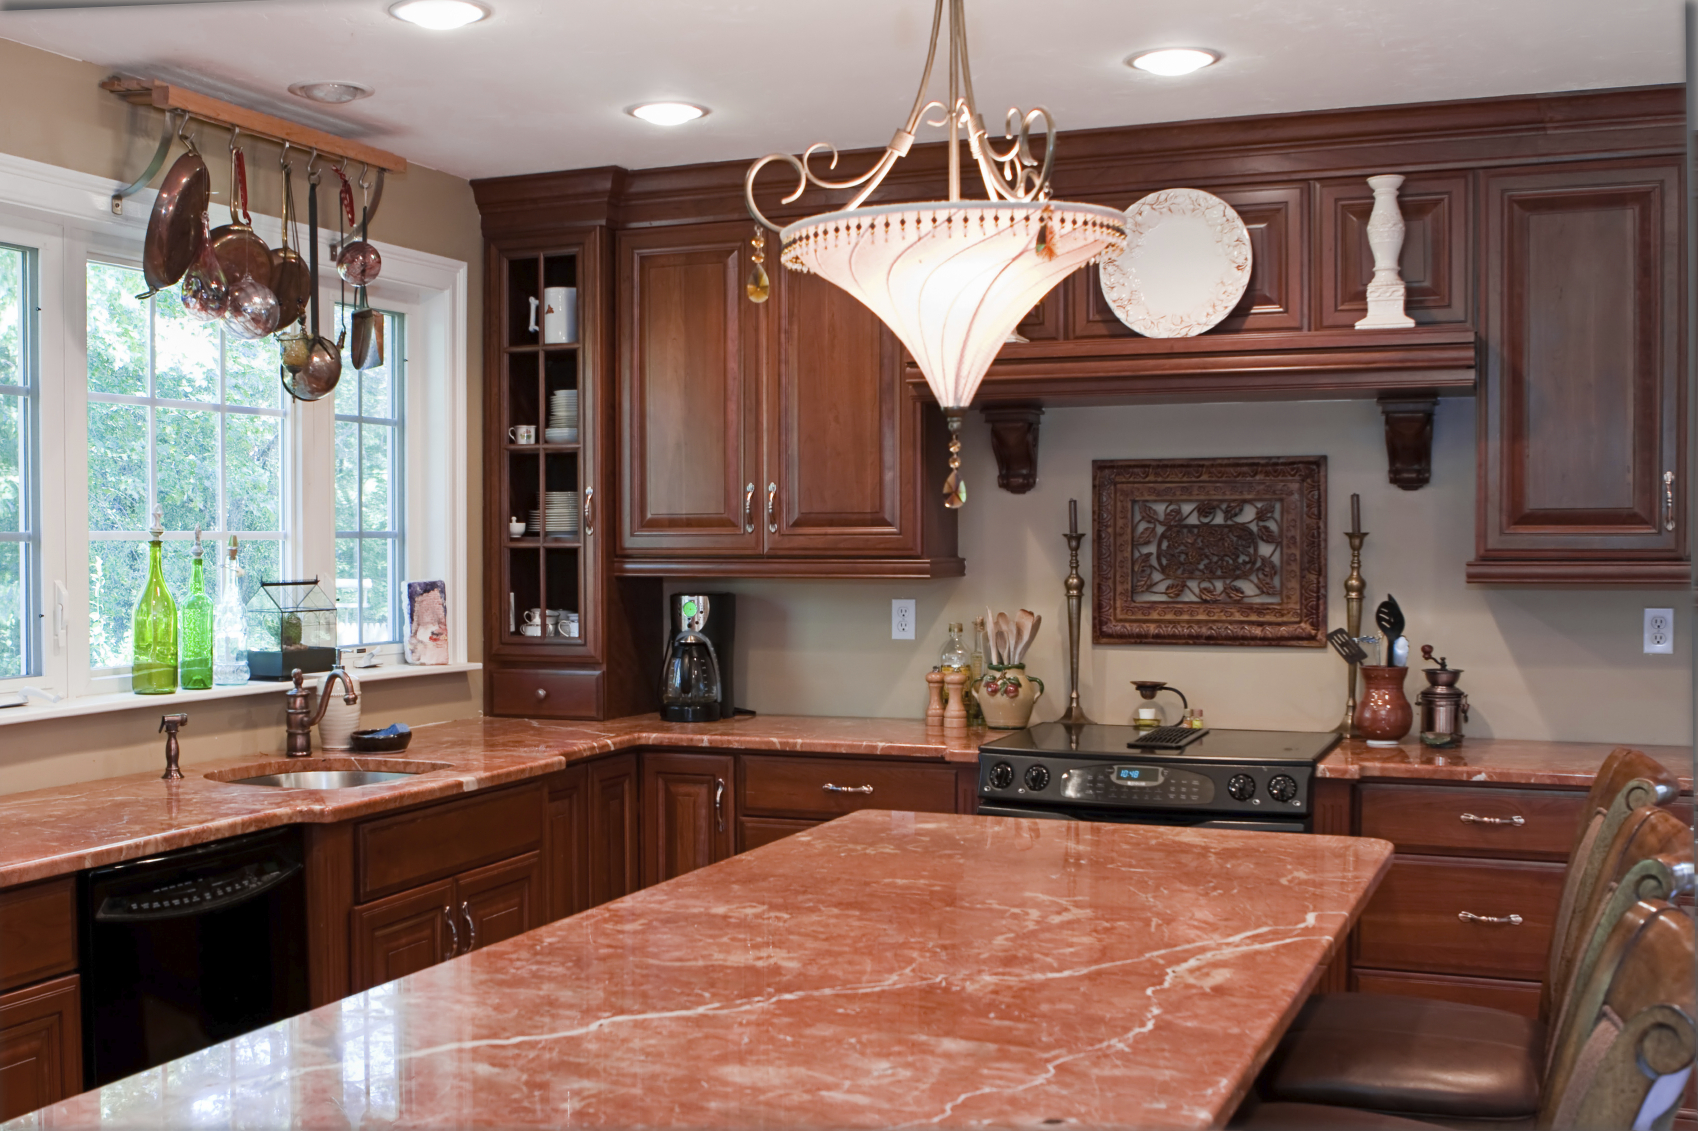 Best Place To Buy Countertops The Pros And Cons Of Tile Countertops